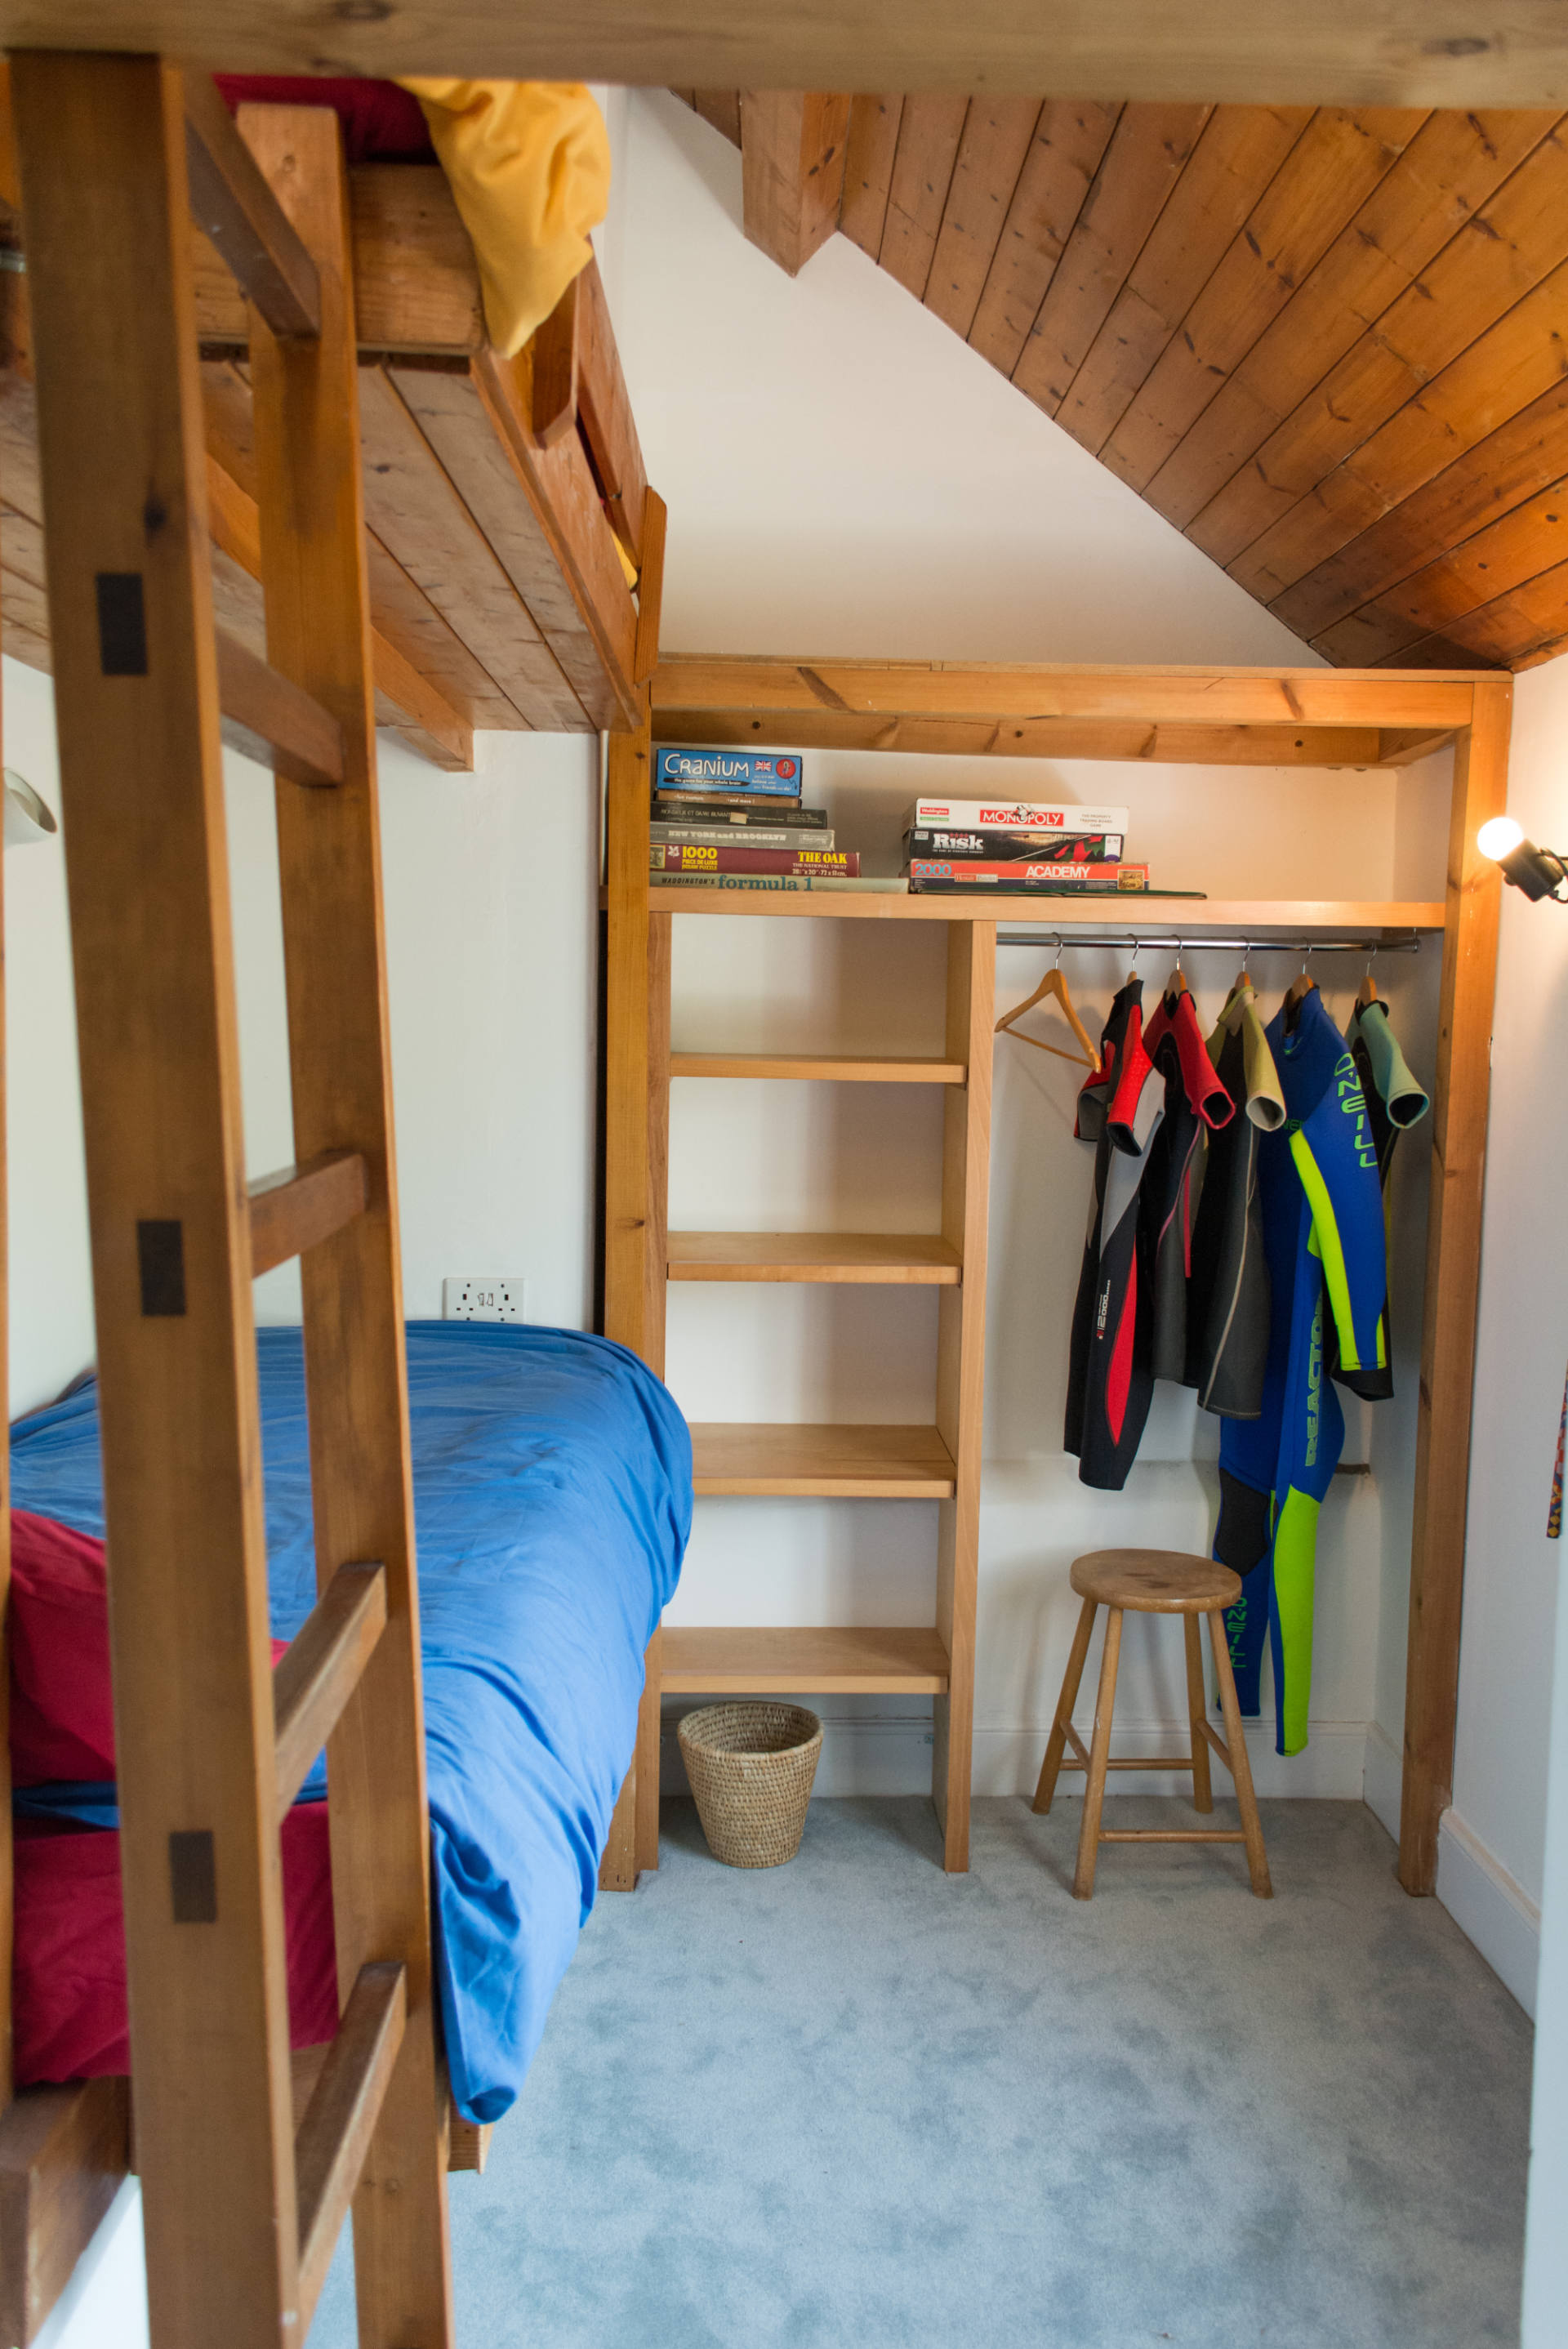 Family cottage children's bunk bed rooms.